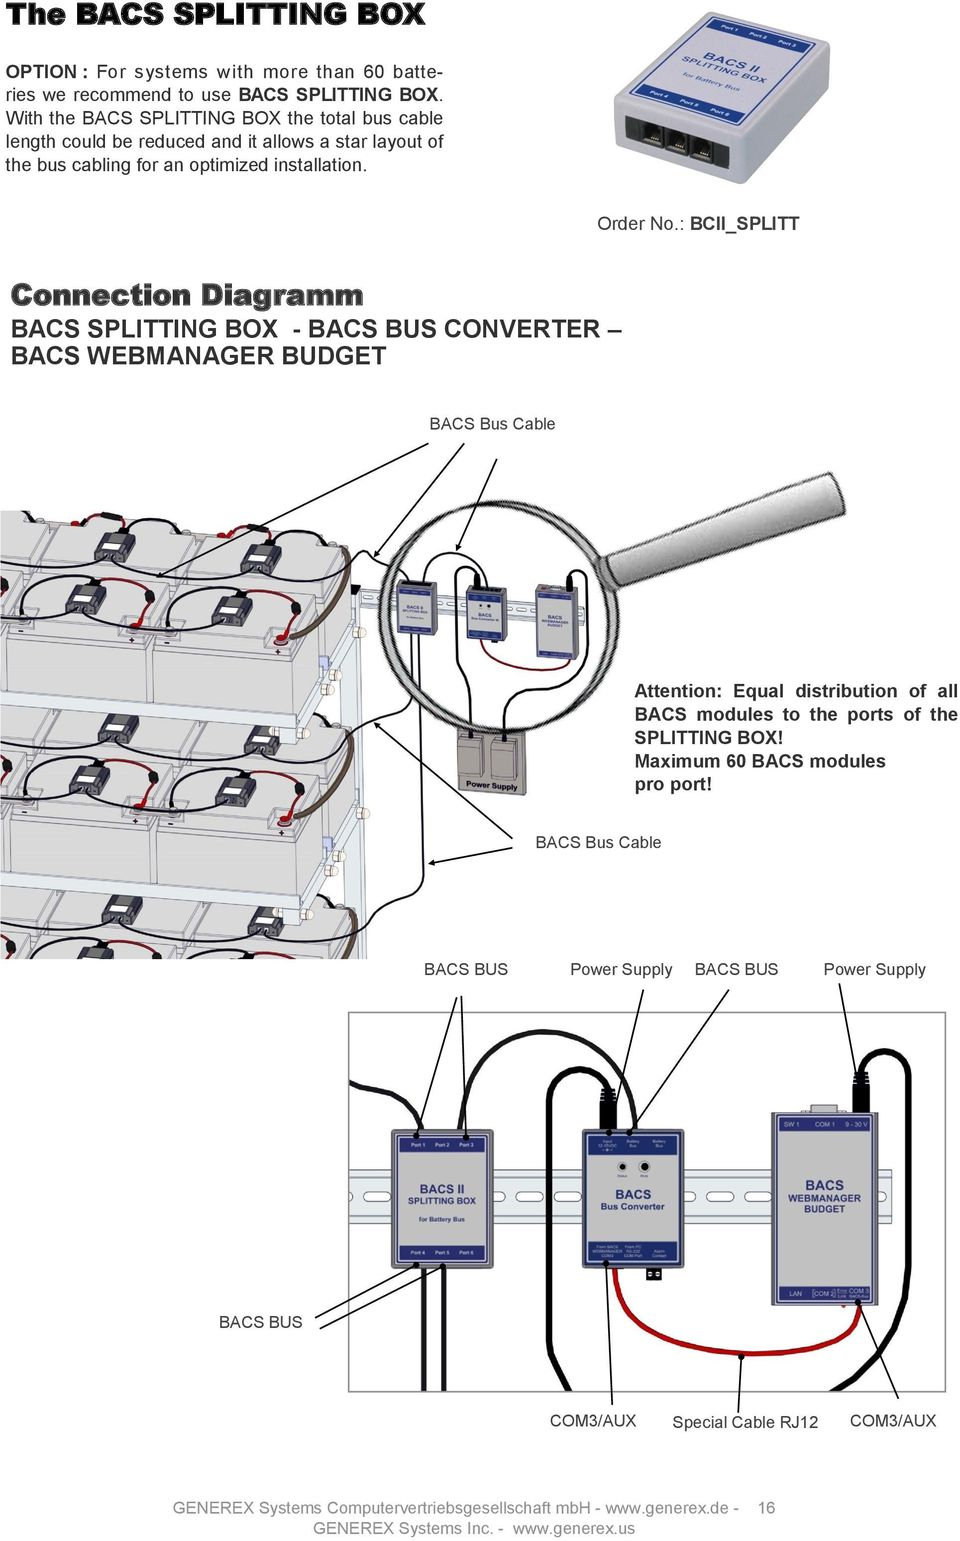 : BCII_SPLITT Connection Diagramm BACS SPLITTING BOX - BACS BUS CONVERTER BACS WEBMANAGER BUDGET BACS Bus Cable Attention: Equal distribution of all BACS modules to the